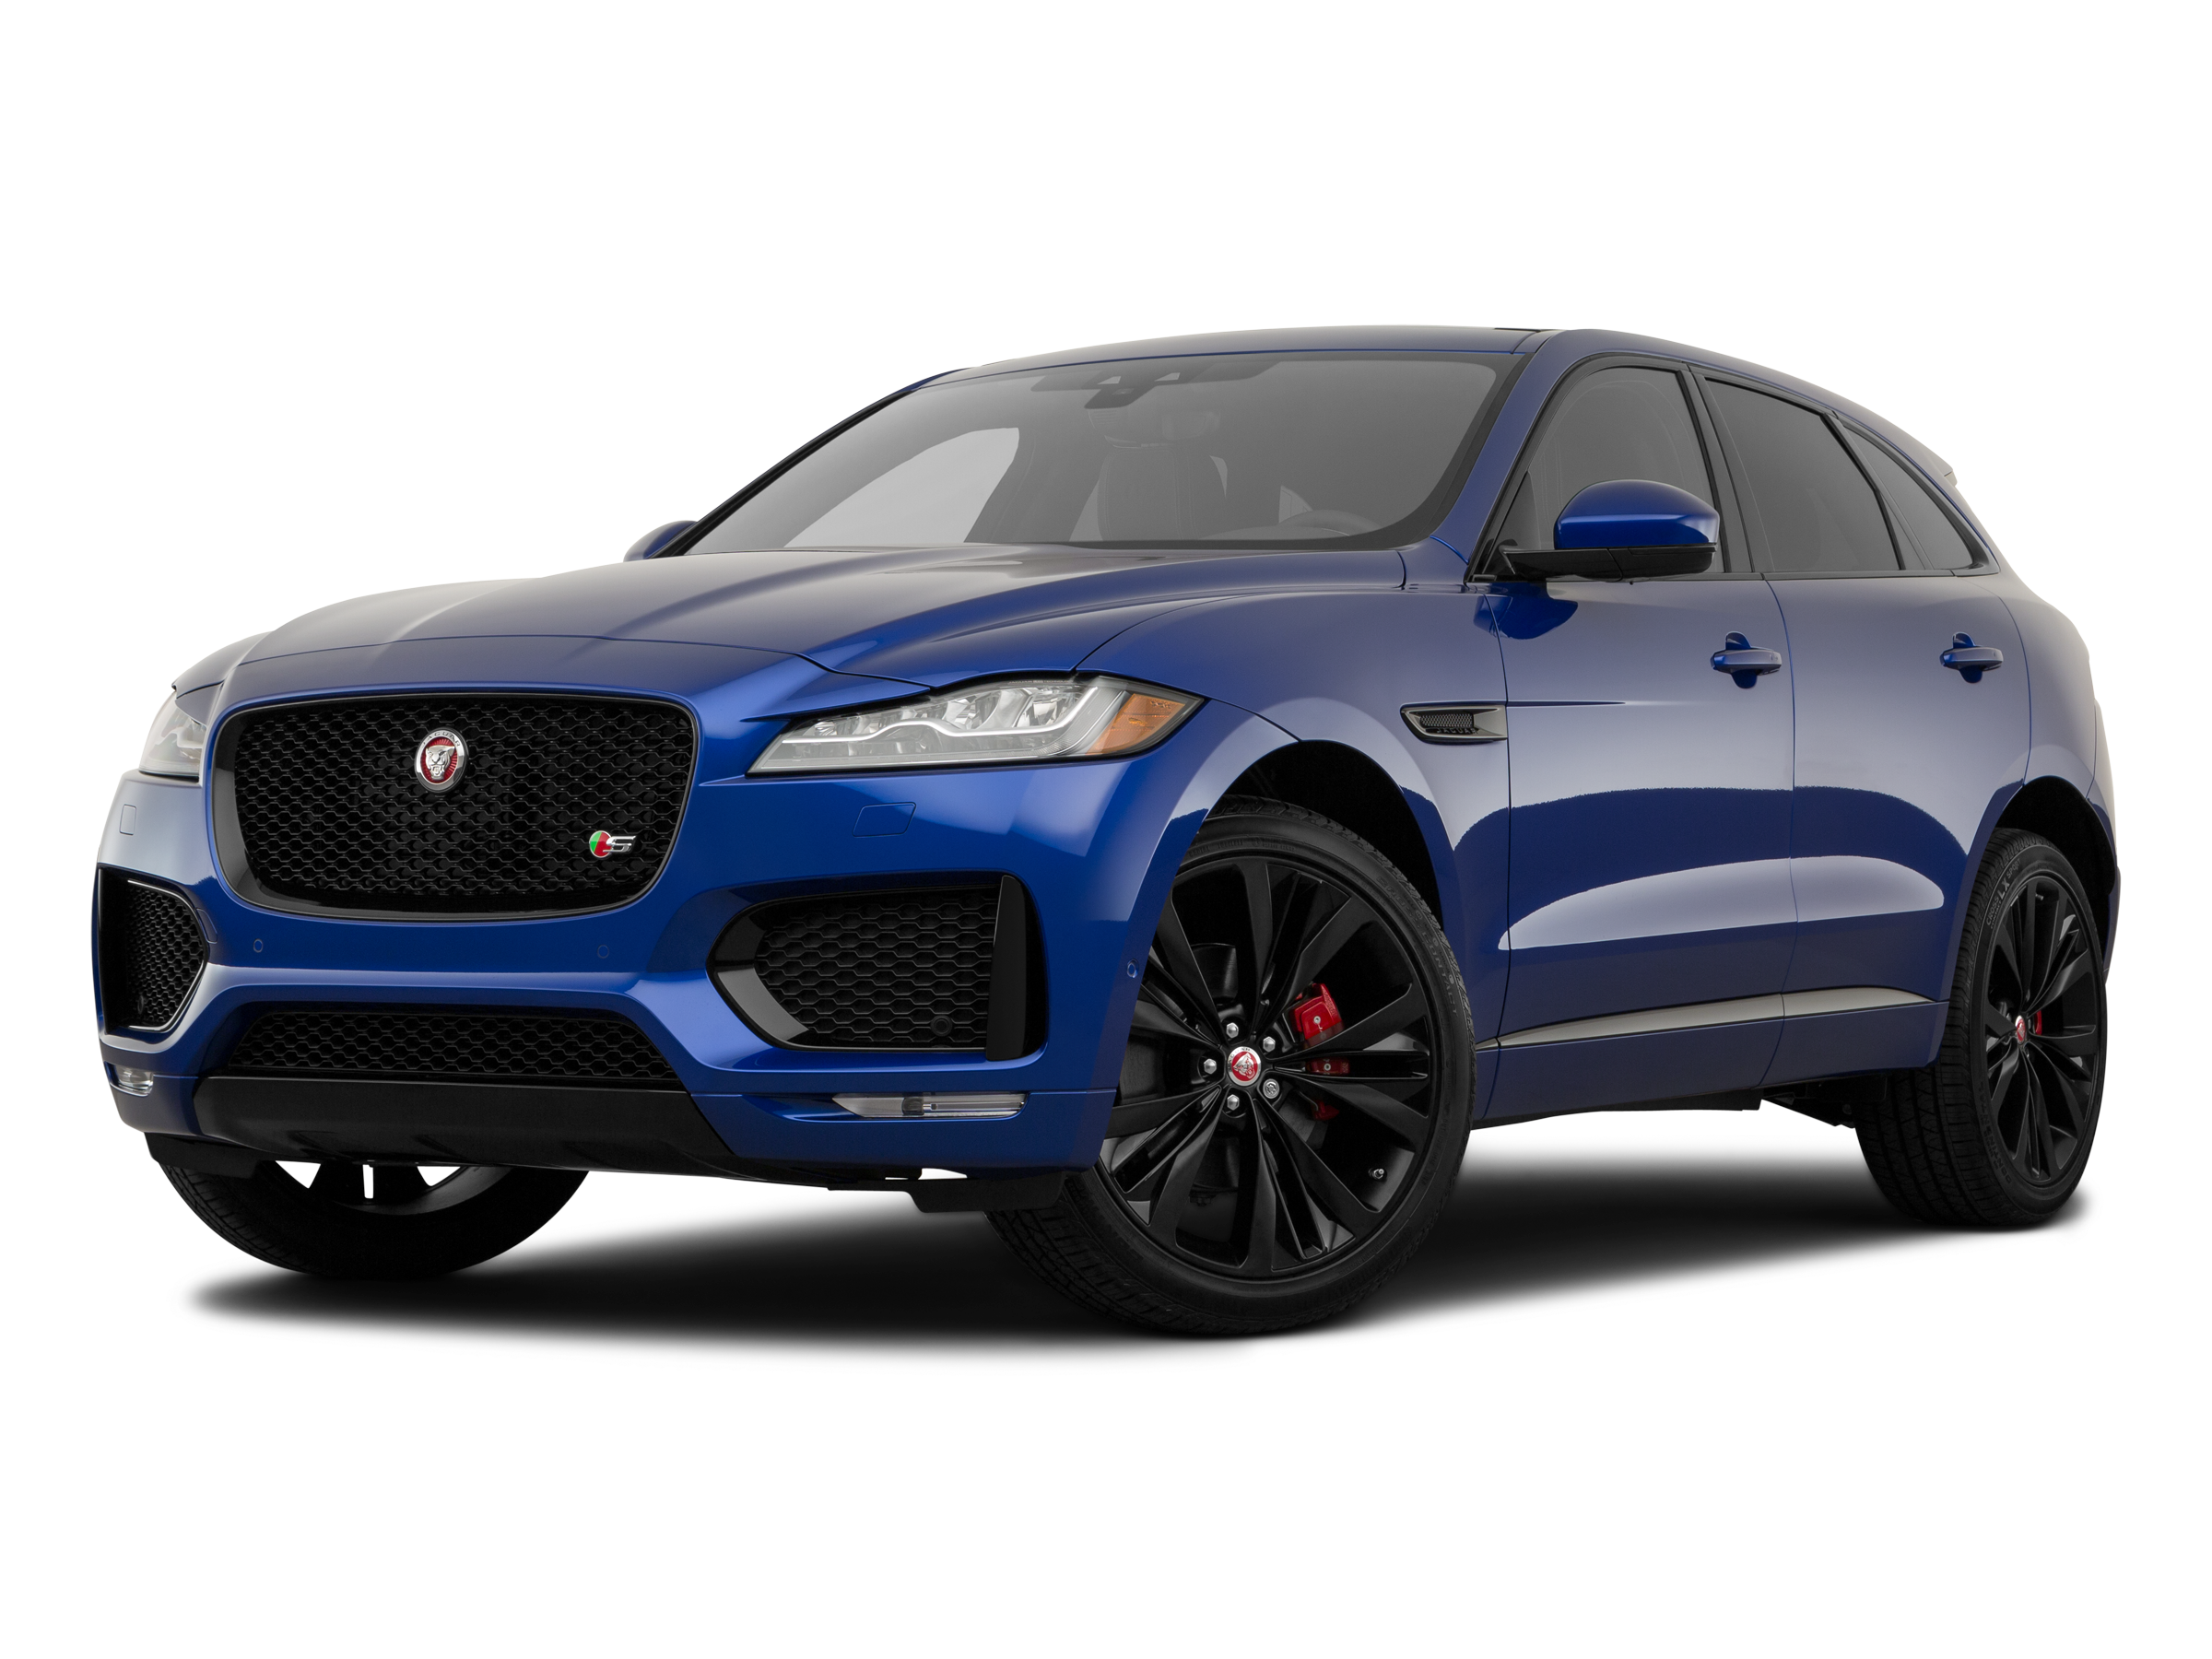 2020 F-PACE